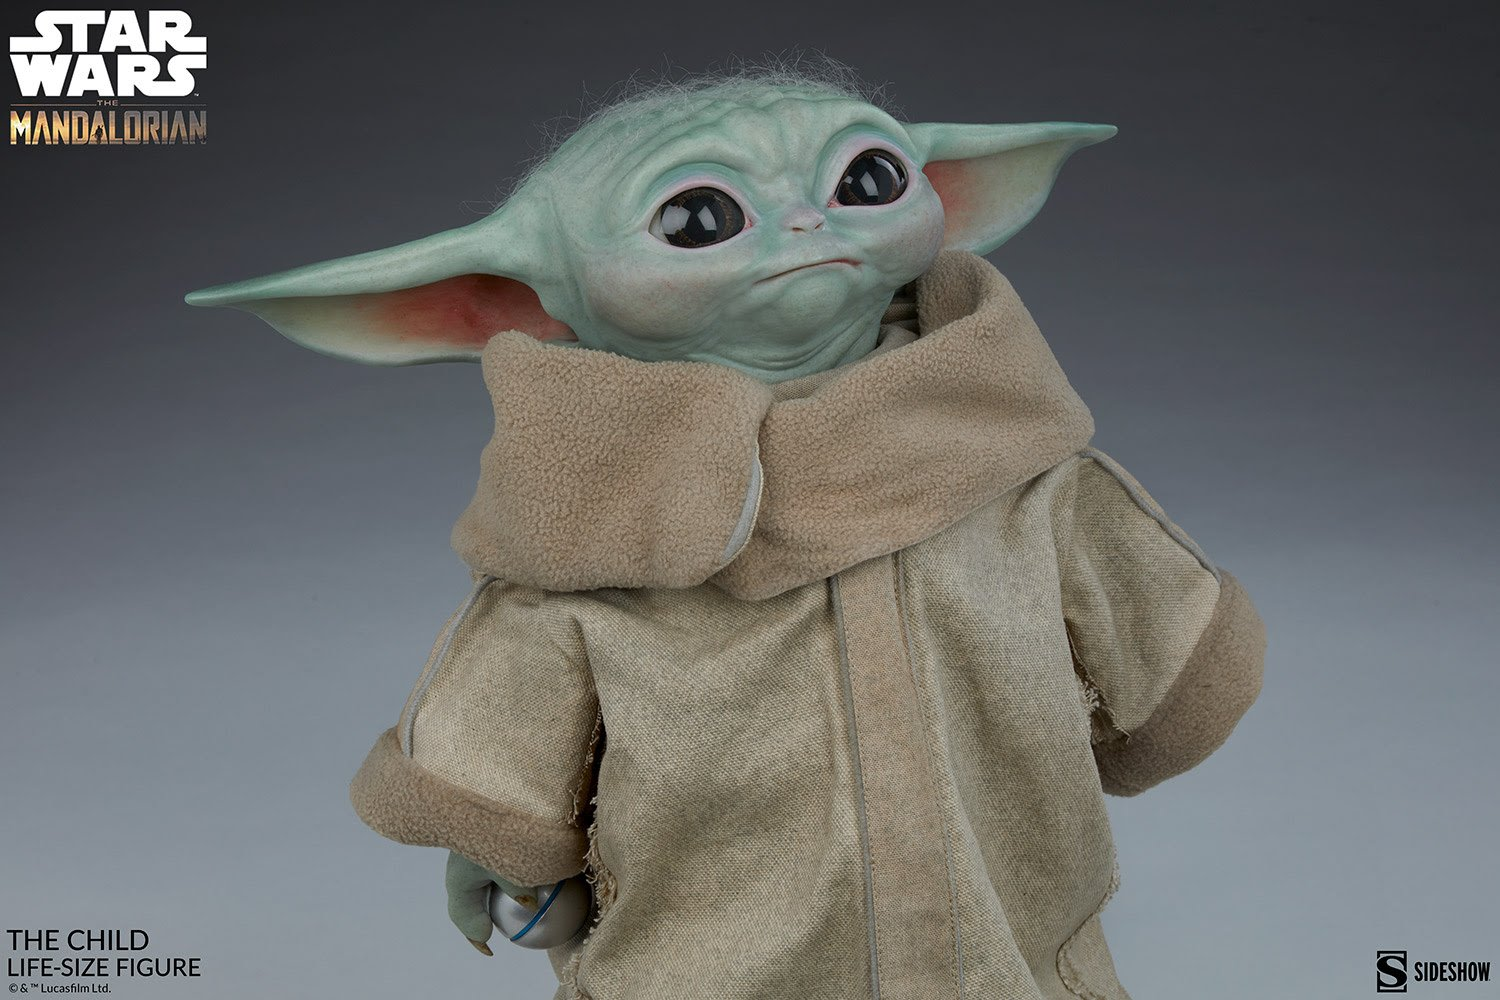 Star Wars The Child - Life Size Figure from Sideshow - Restocked